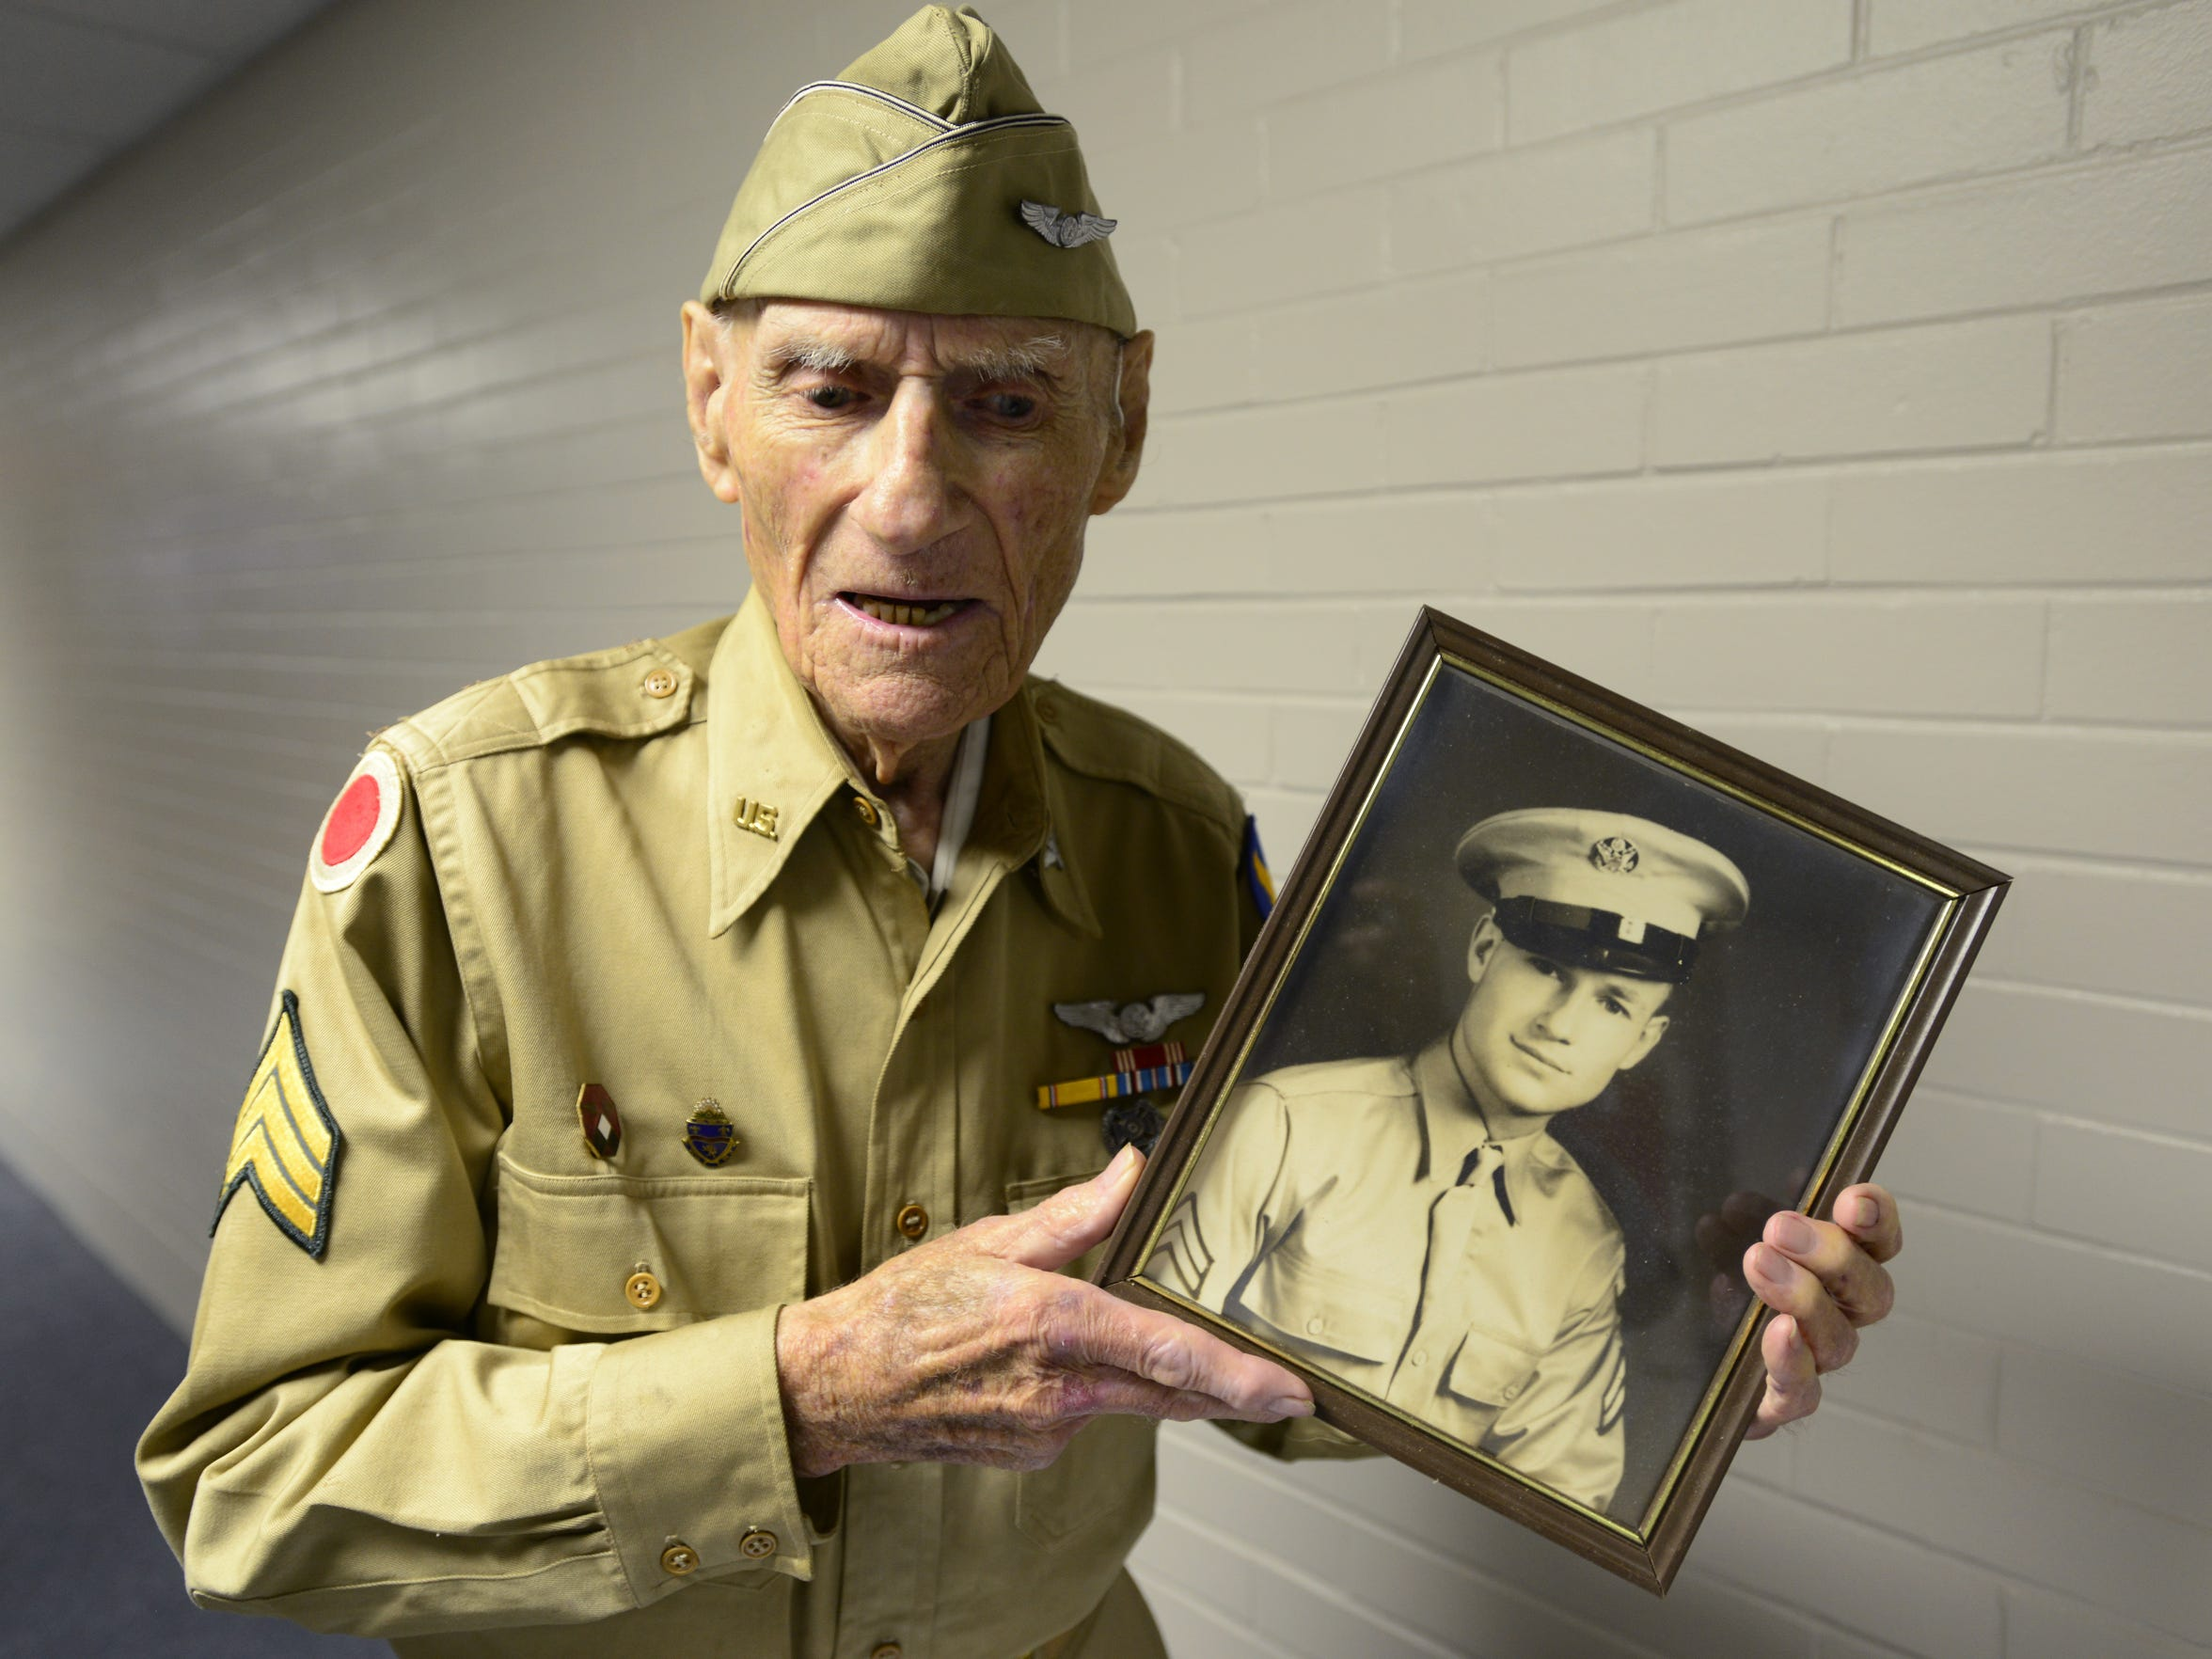 Jim McGrady, 97, of Fremont, holds a picture of himself from 1942 when he served in field artillery.